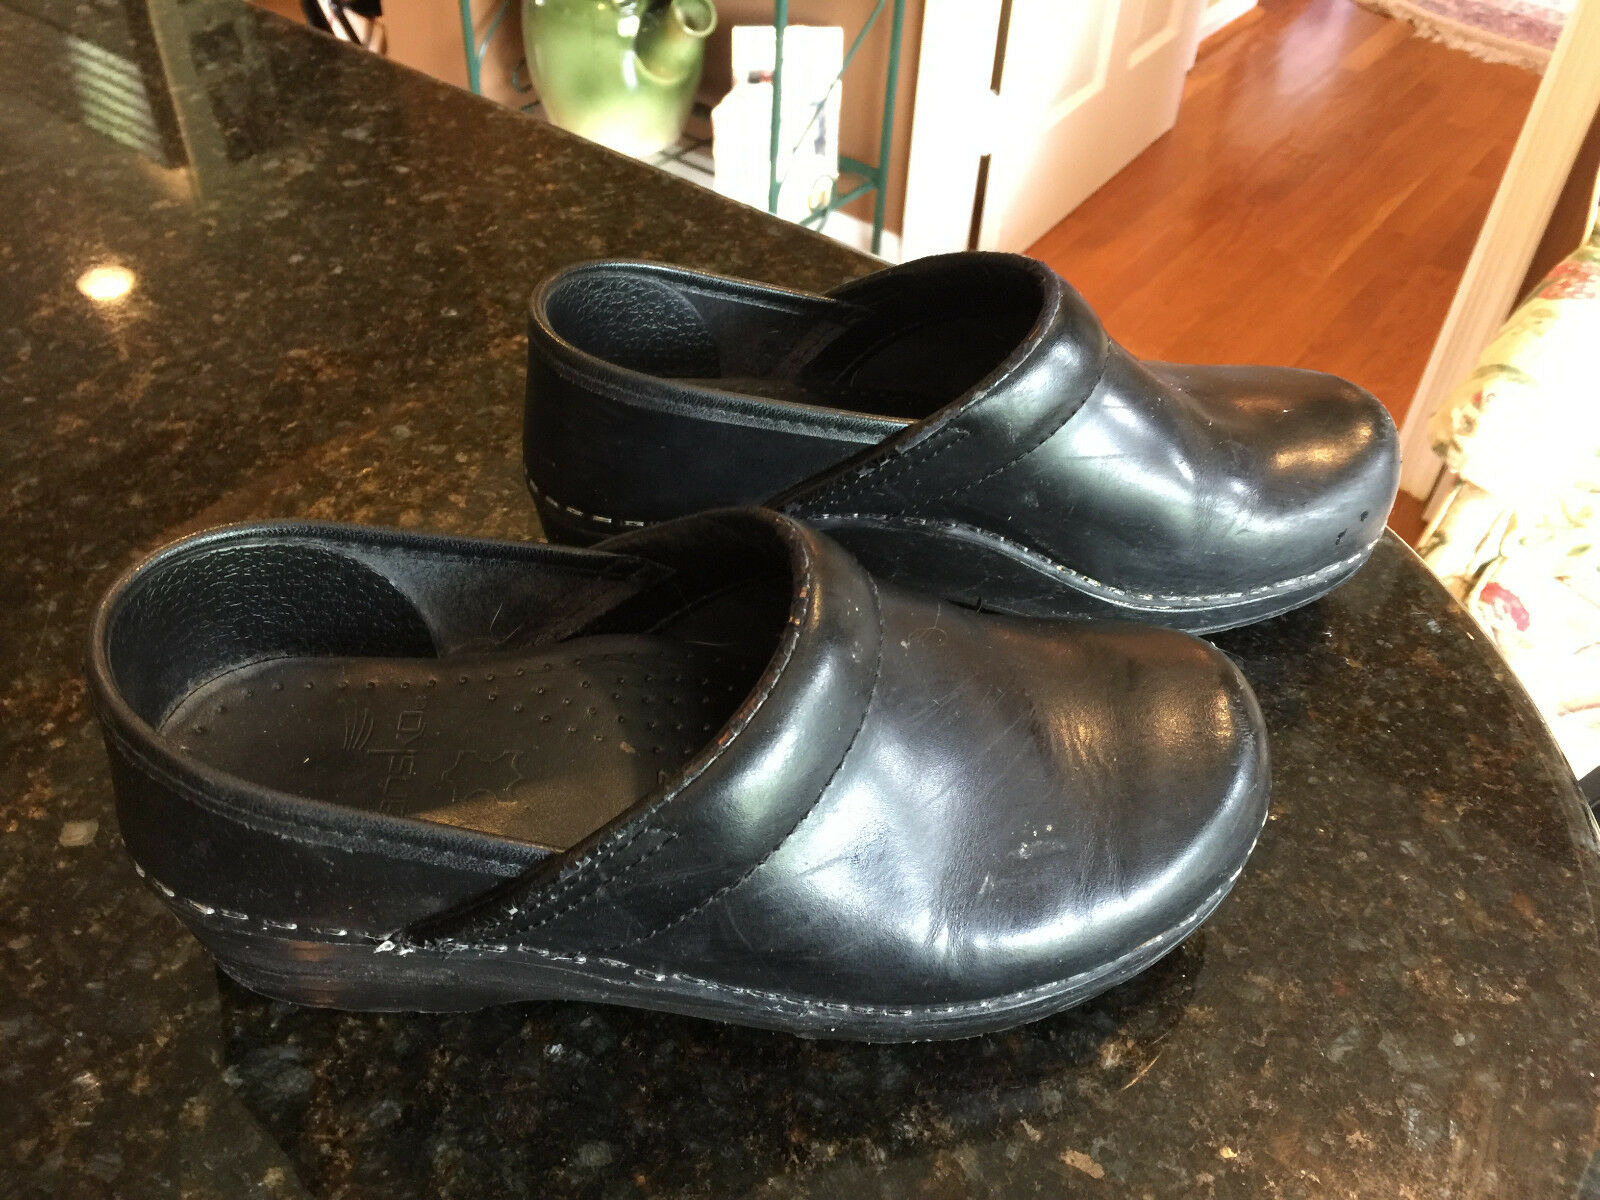 Comfort Shoes Motivated Sas Free Time Tripad Comfort Shoes Work Walking Sz 9.5 M Brown Leather Nursing High Quality And Inexpensive